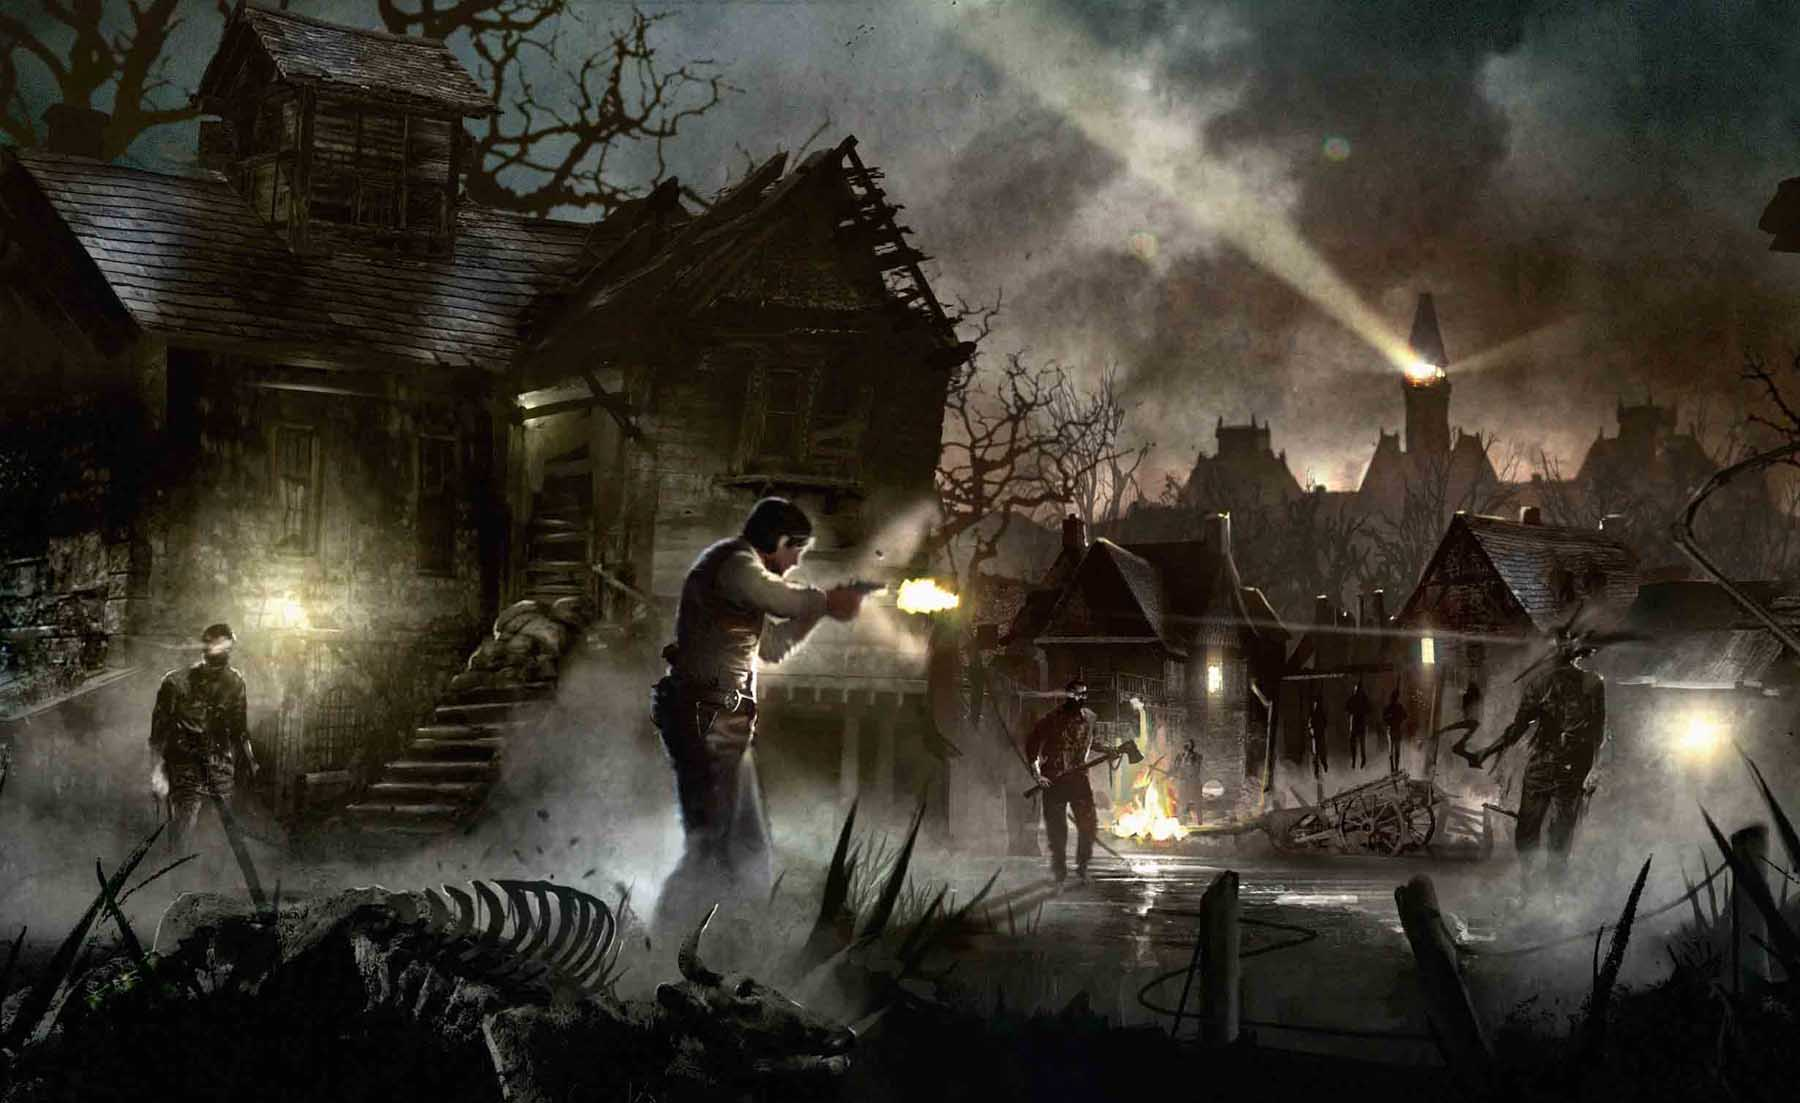 New evidence points to an Evil Within sequel screenshot